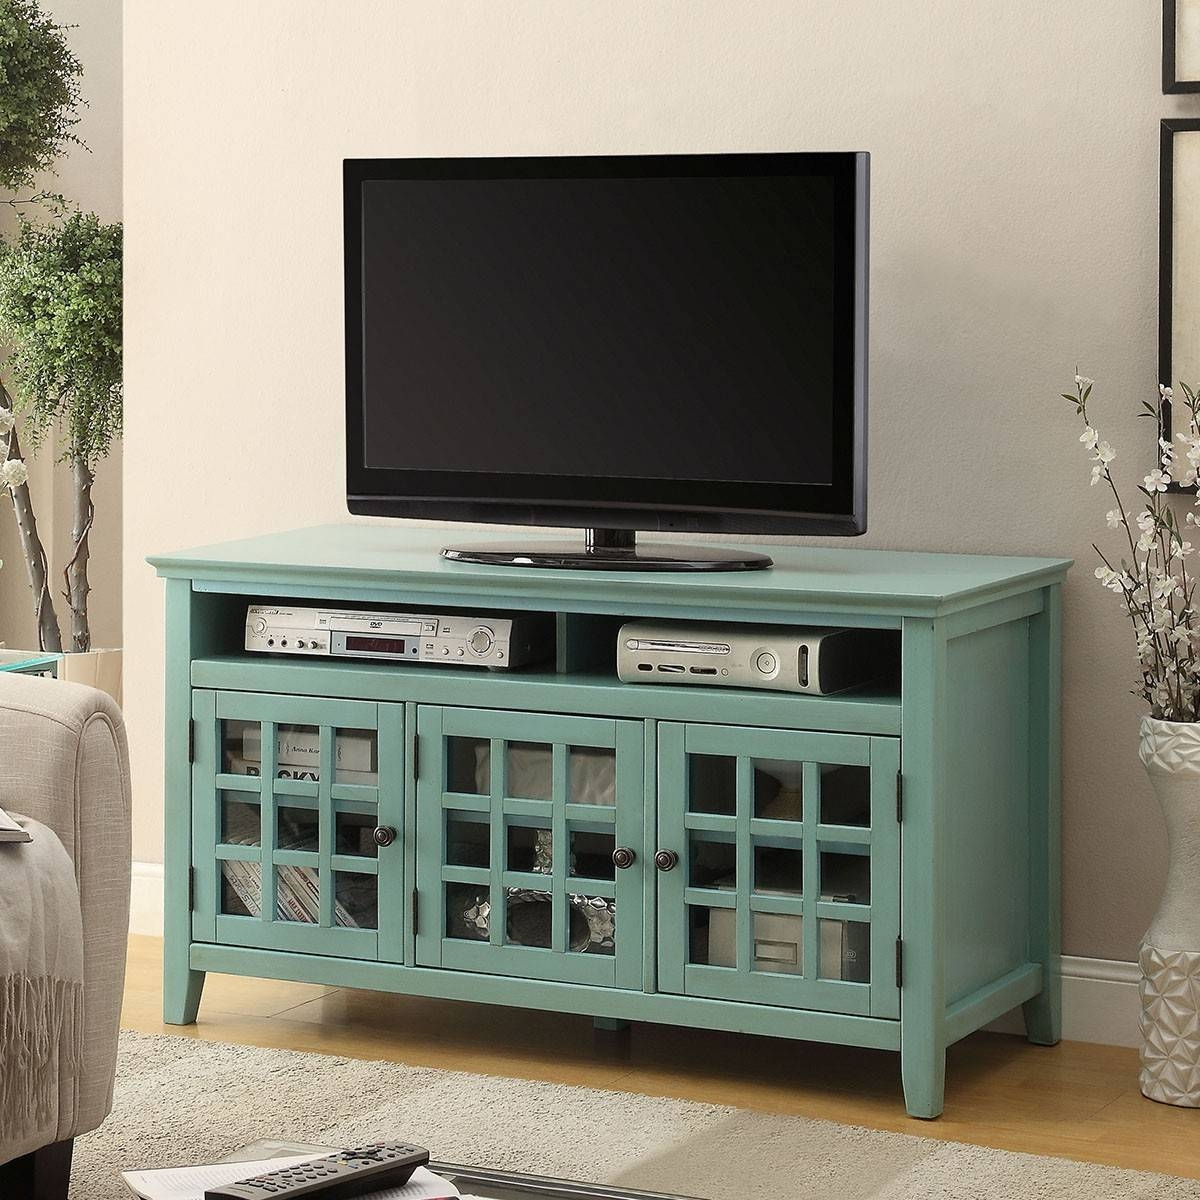 """Linon 650202trq01u Largo 48"""" Antique Turquoise Media Cabinet Tv Throughout Glass Fronted Tv Cabinet (View 2 of 15)"""